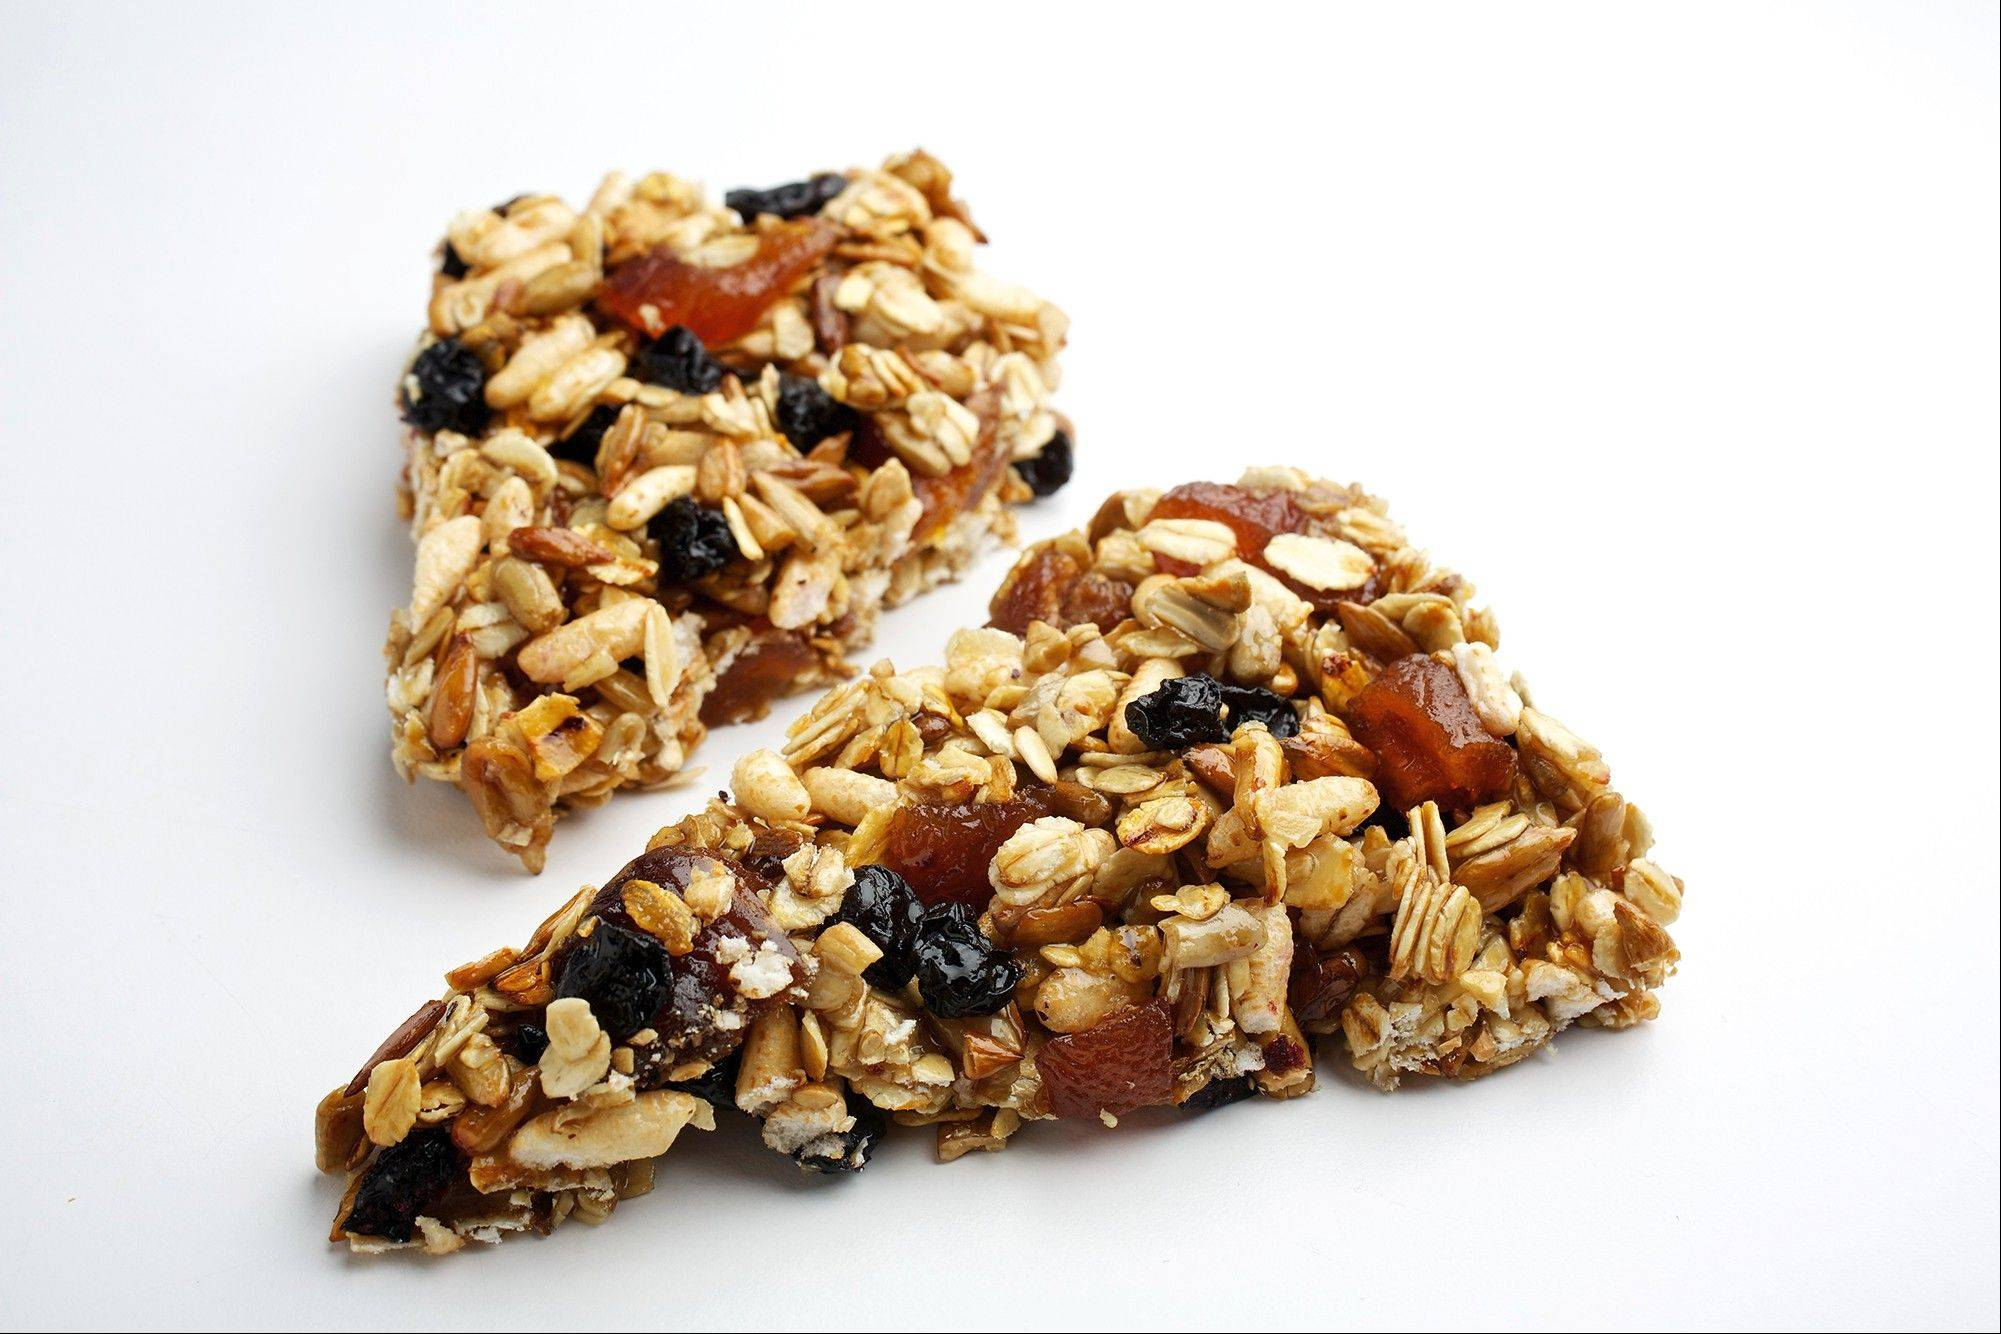 Granola wedges are a chewy, crunchy and gluten-free snack made with all whole foods.